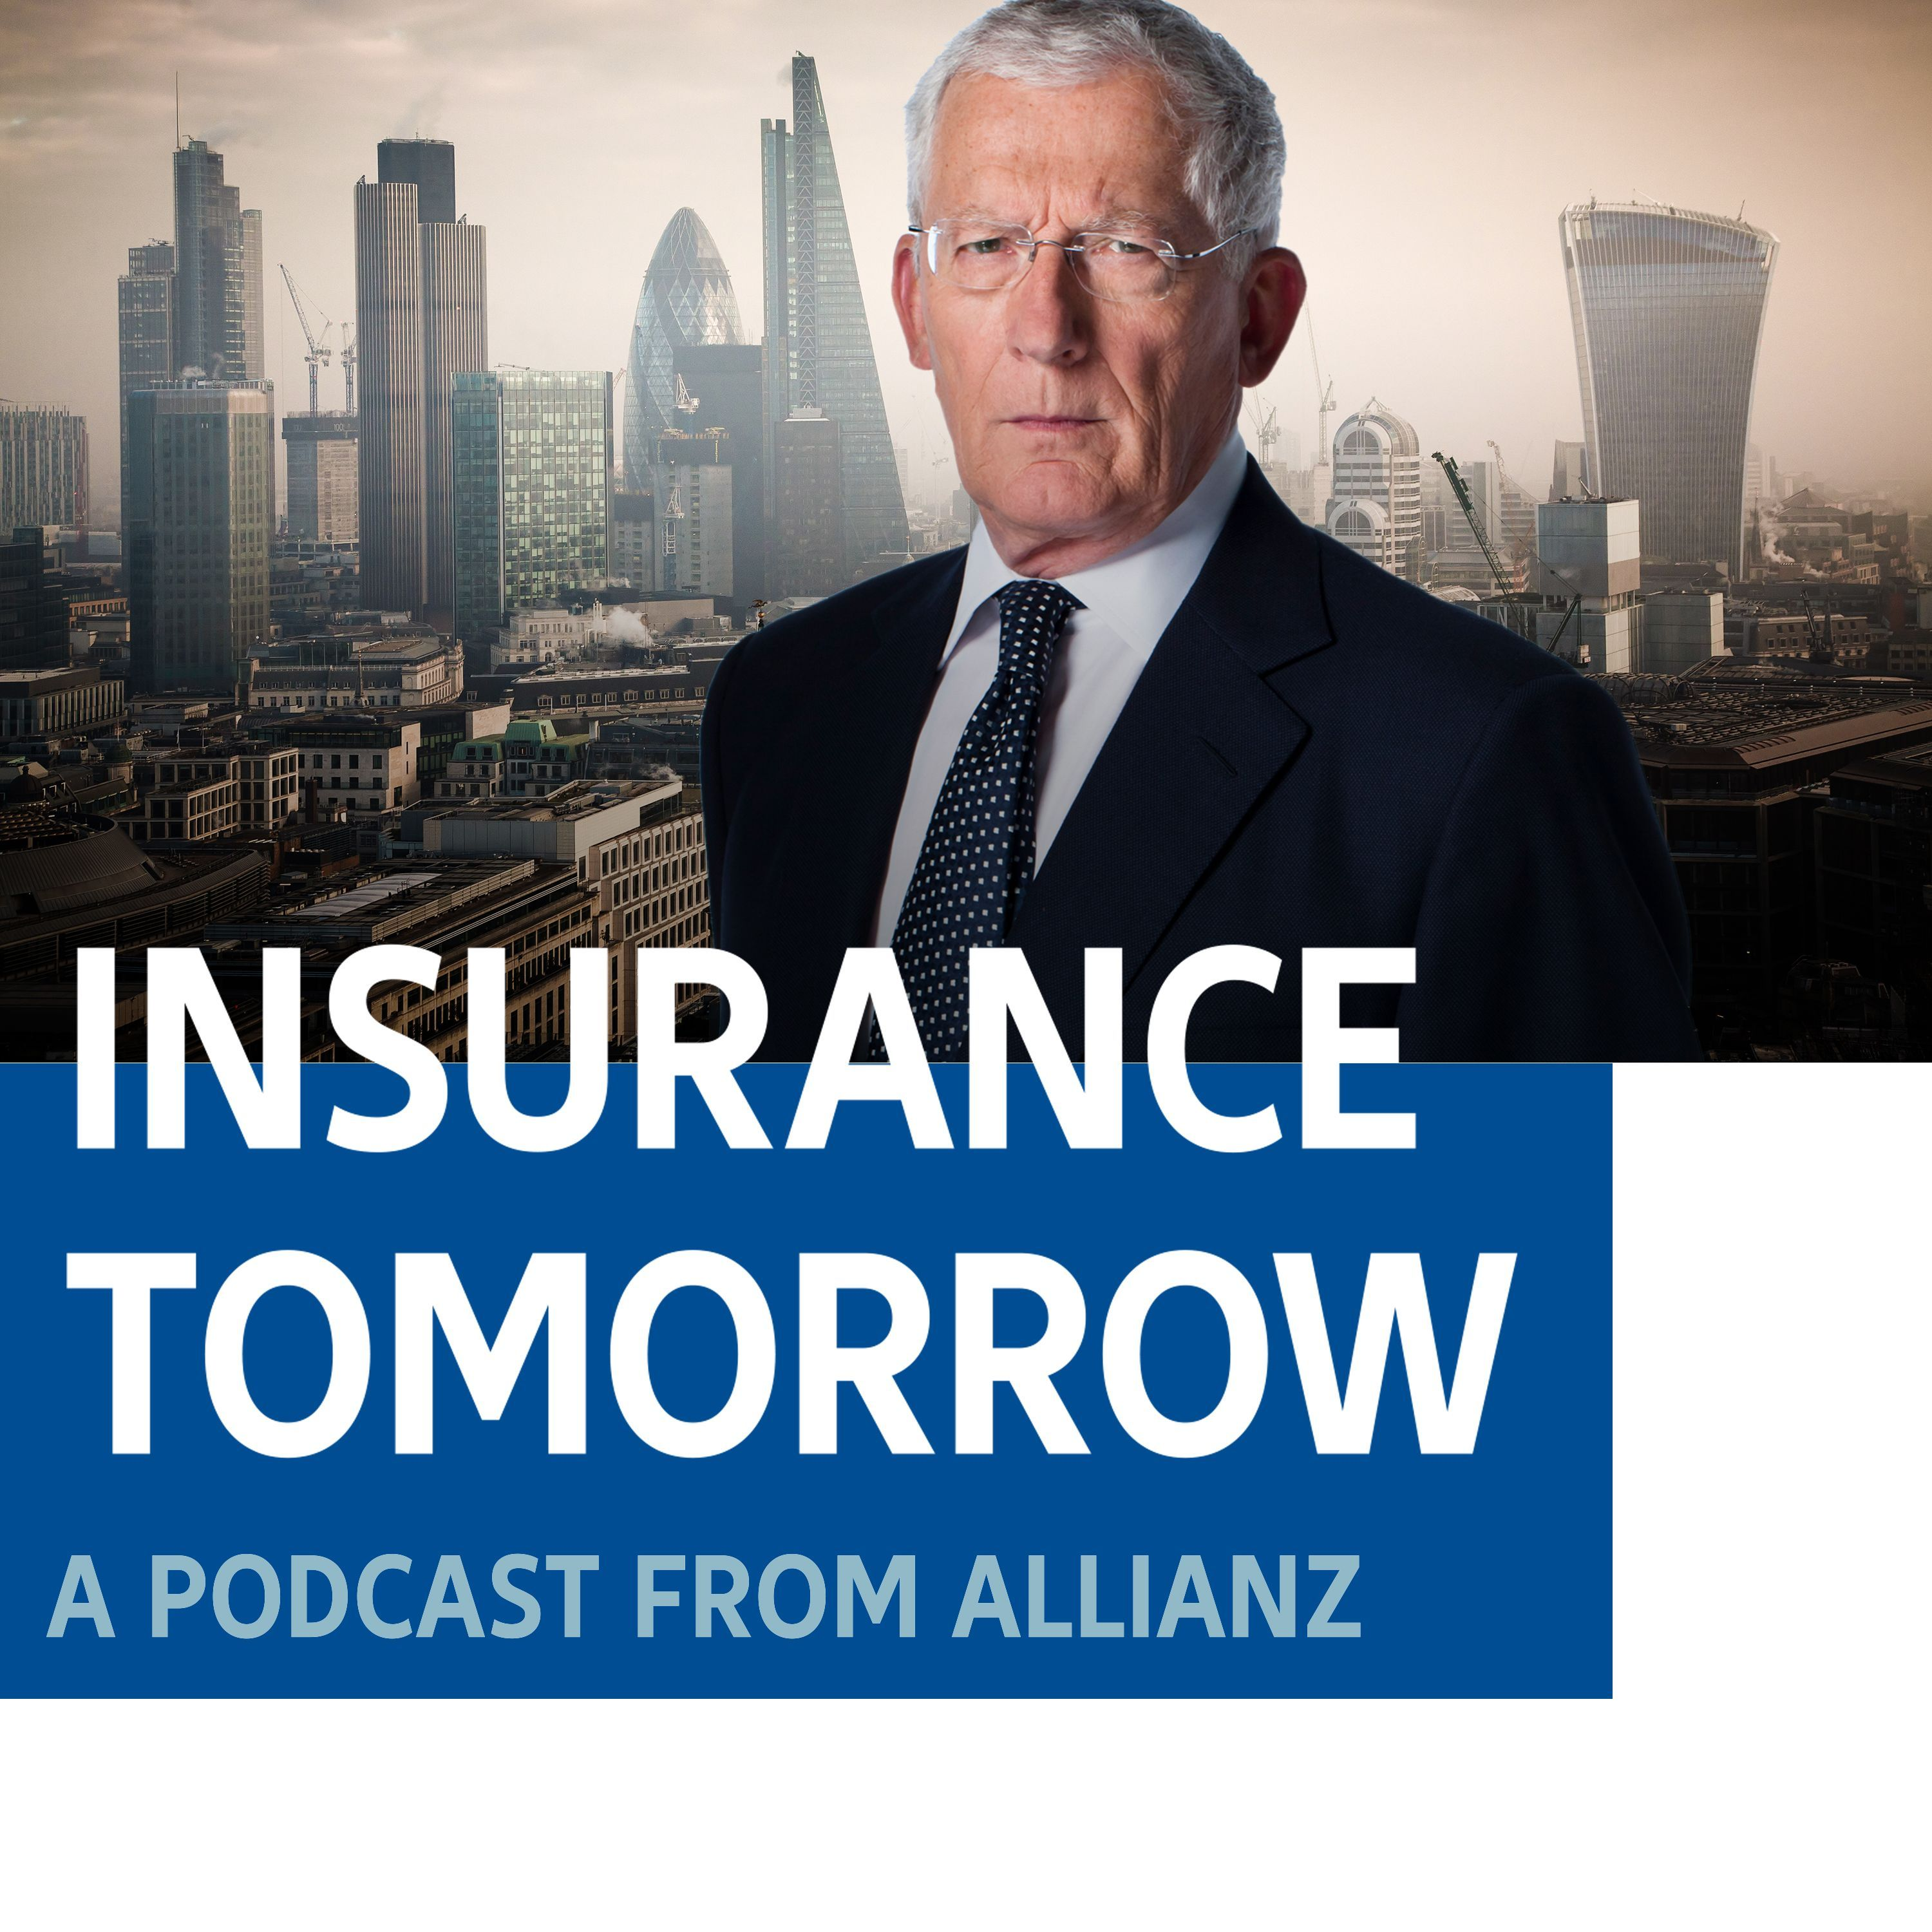 Customer Engagement and the Insurance Industry